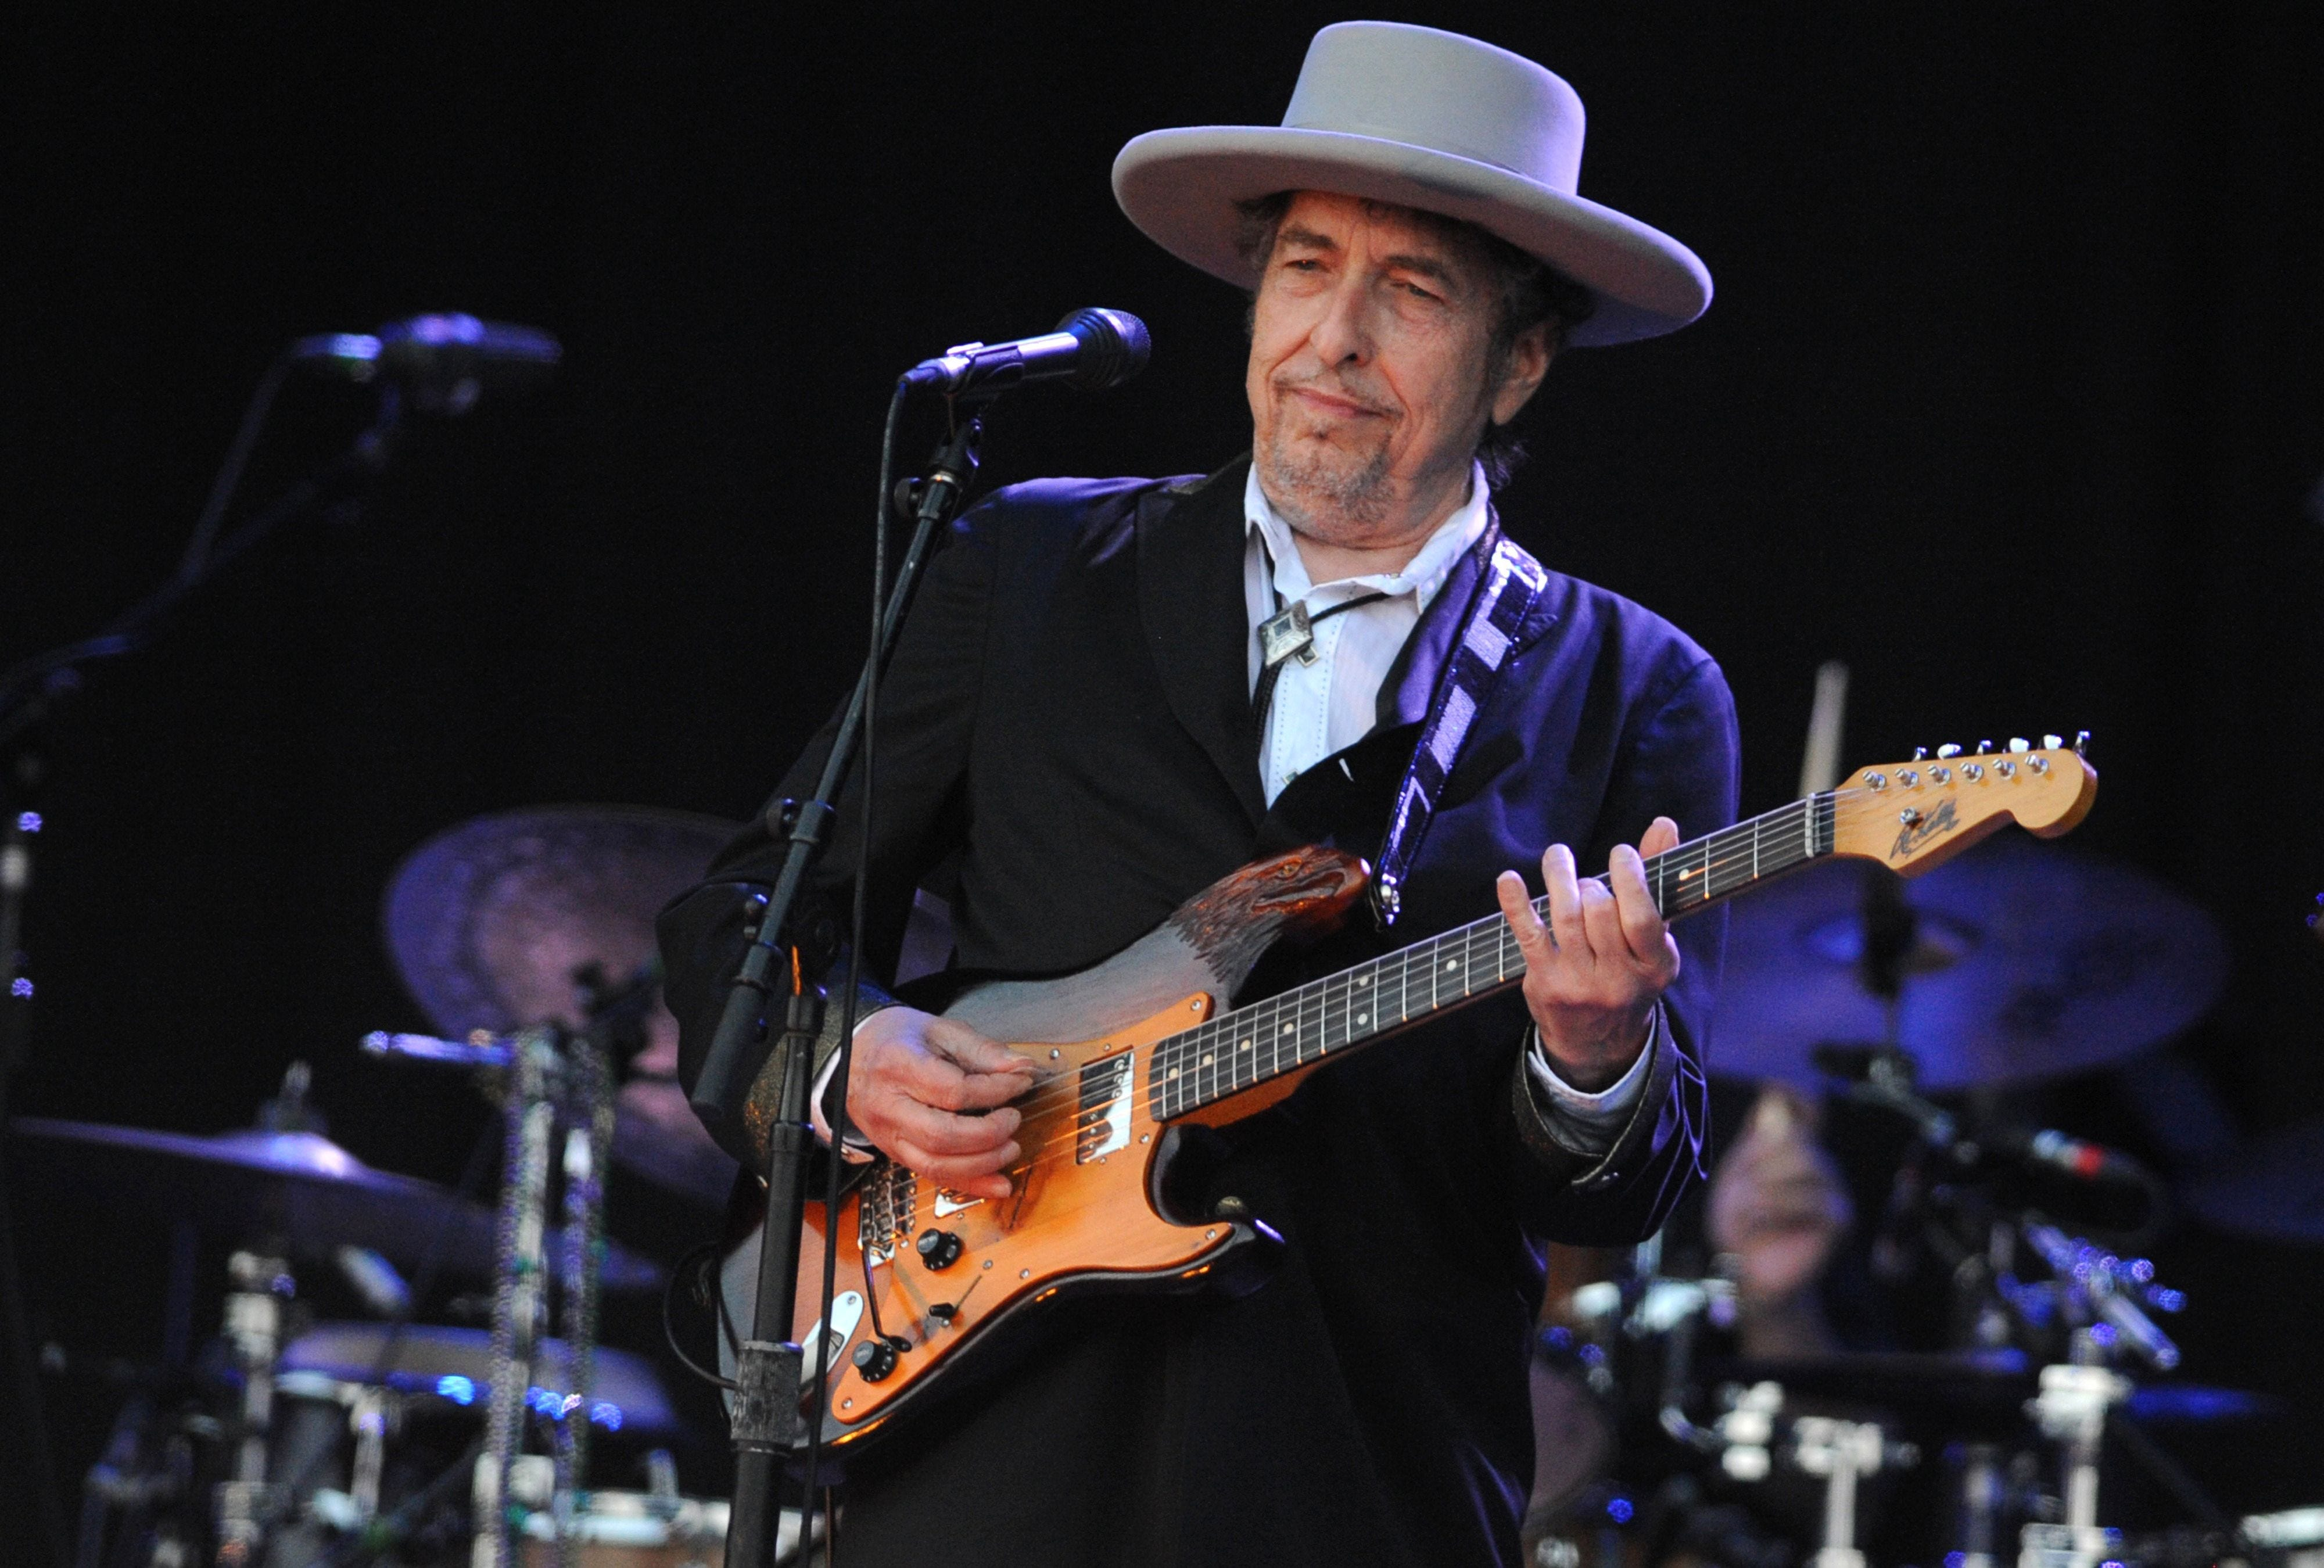 Legendary singer-songwriter Bob Dylan to perform at Palace Theatre on Nov. 6